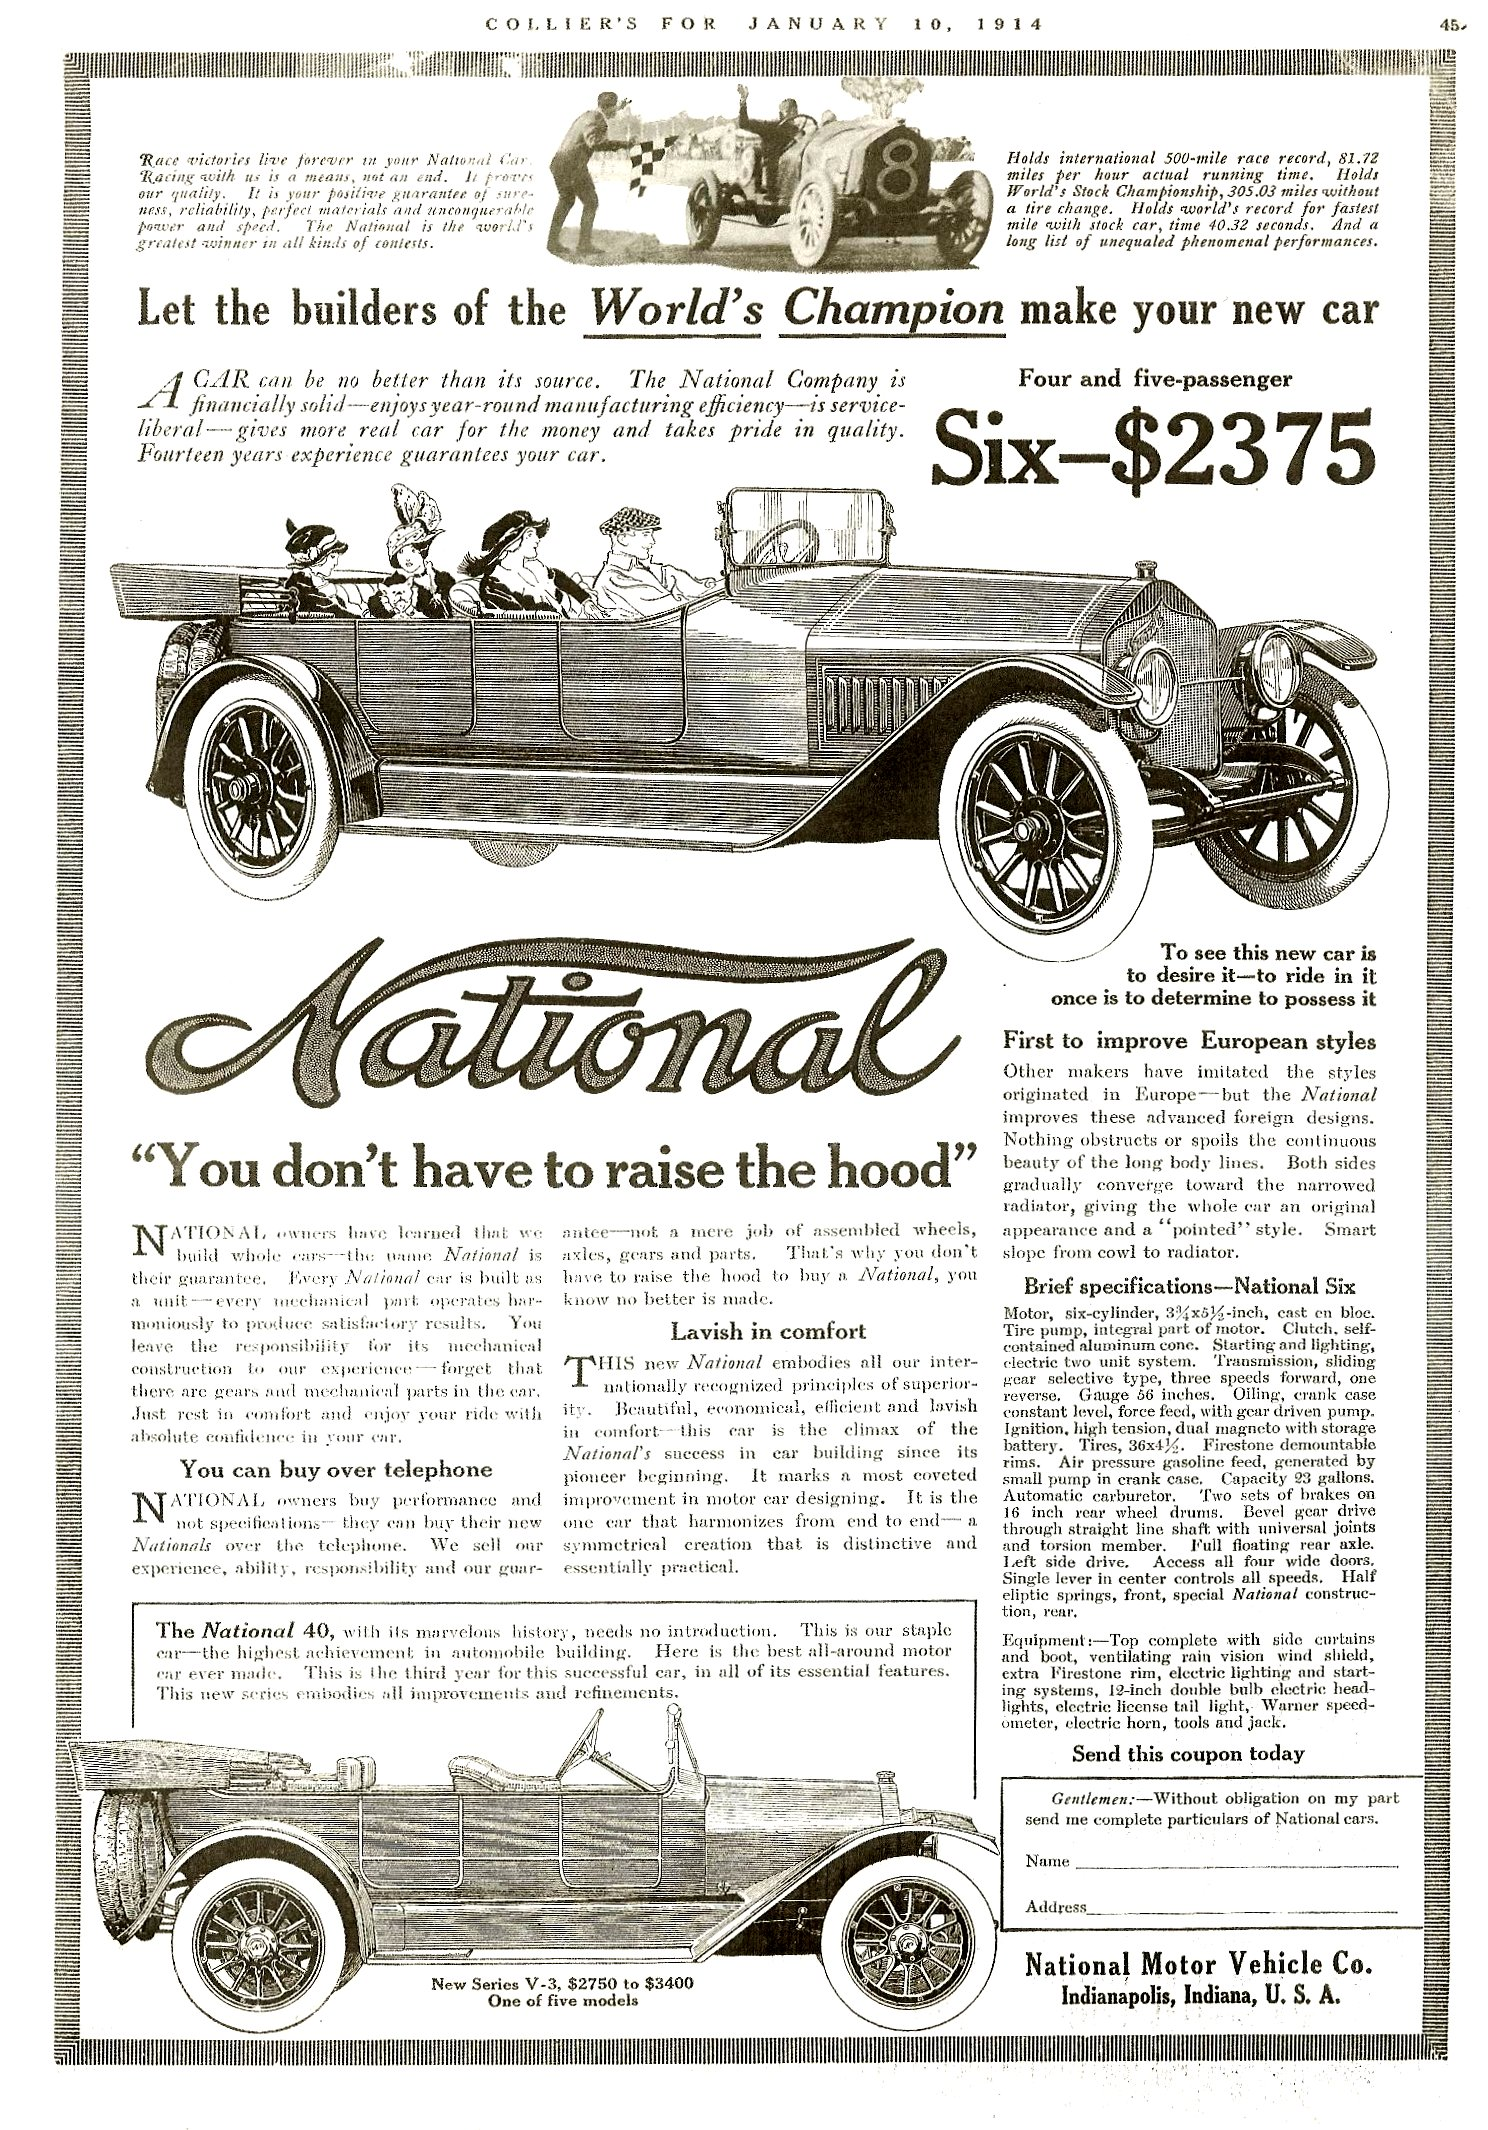 """1914 1 10 NATIONAL National Six-$2375 """"You don't have to raise the hood"""" COLLIER'S for January 10, 1914 xerox 10″x14″"""